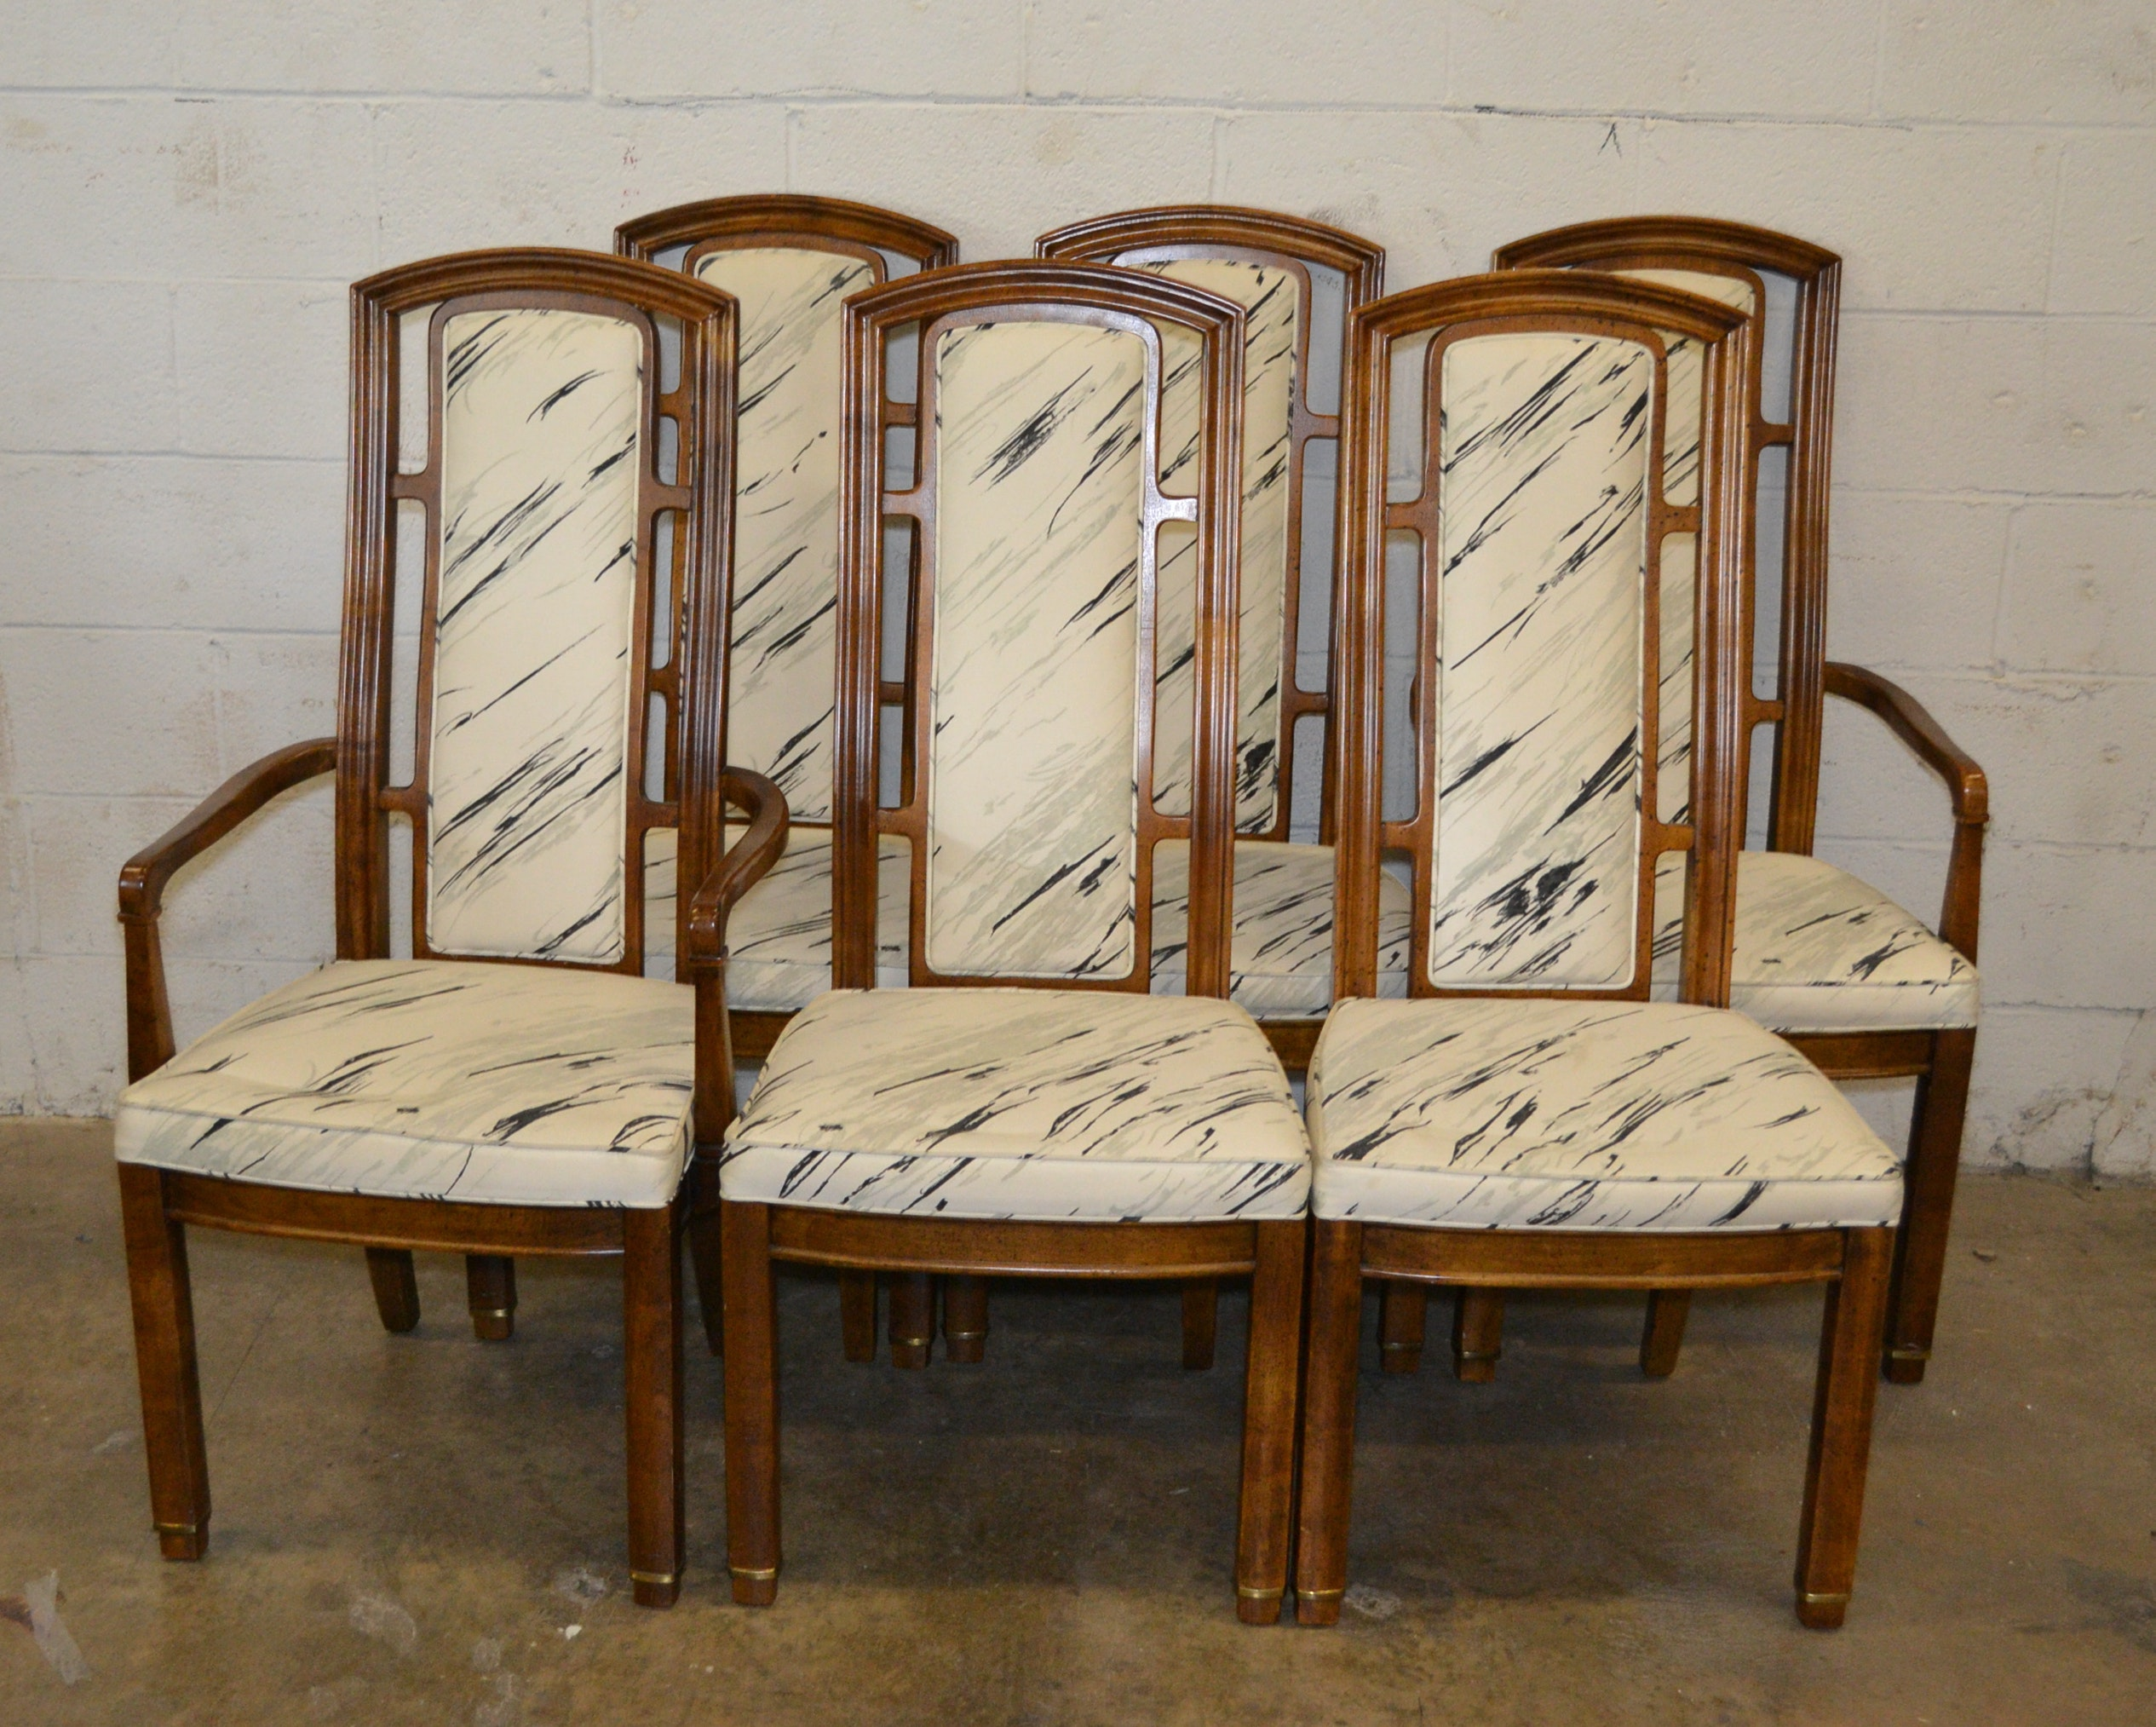 A Set of Six Modern Upholstered Dining Room Chairs